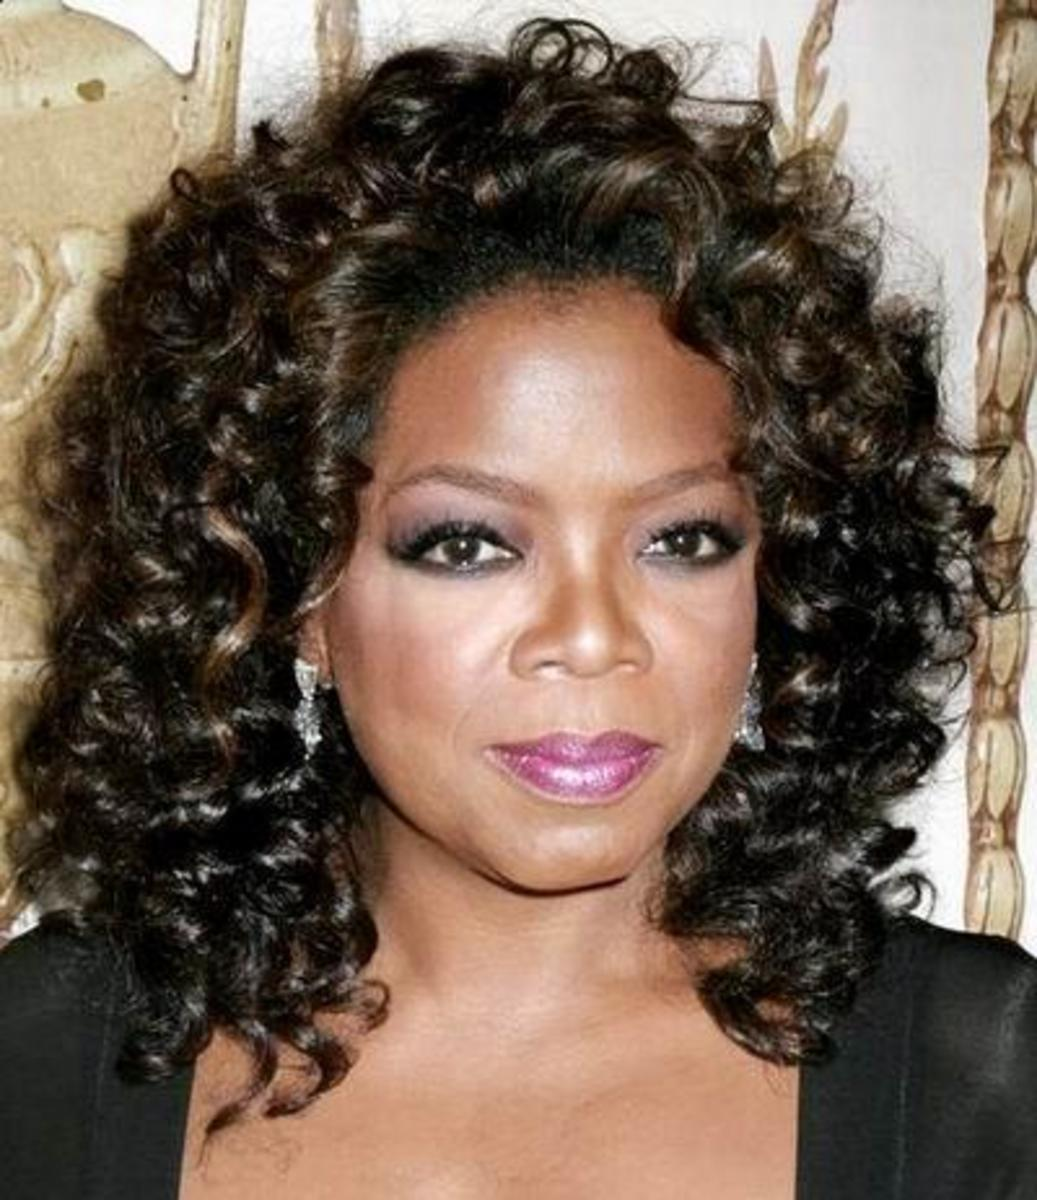 Oprah's medium-length curly hair